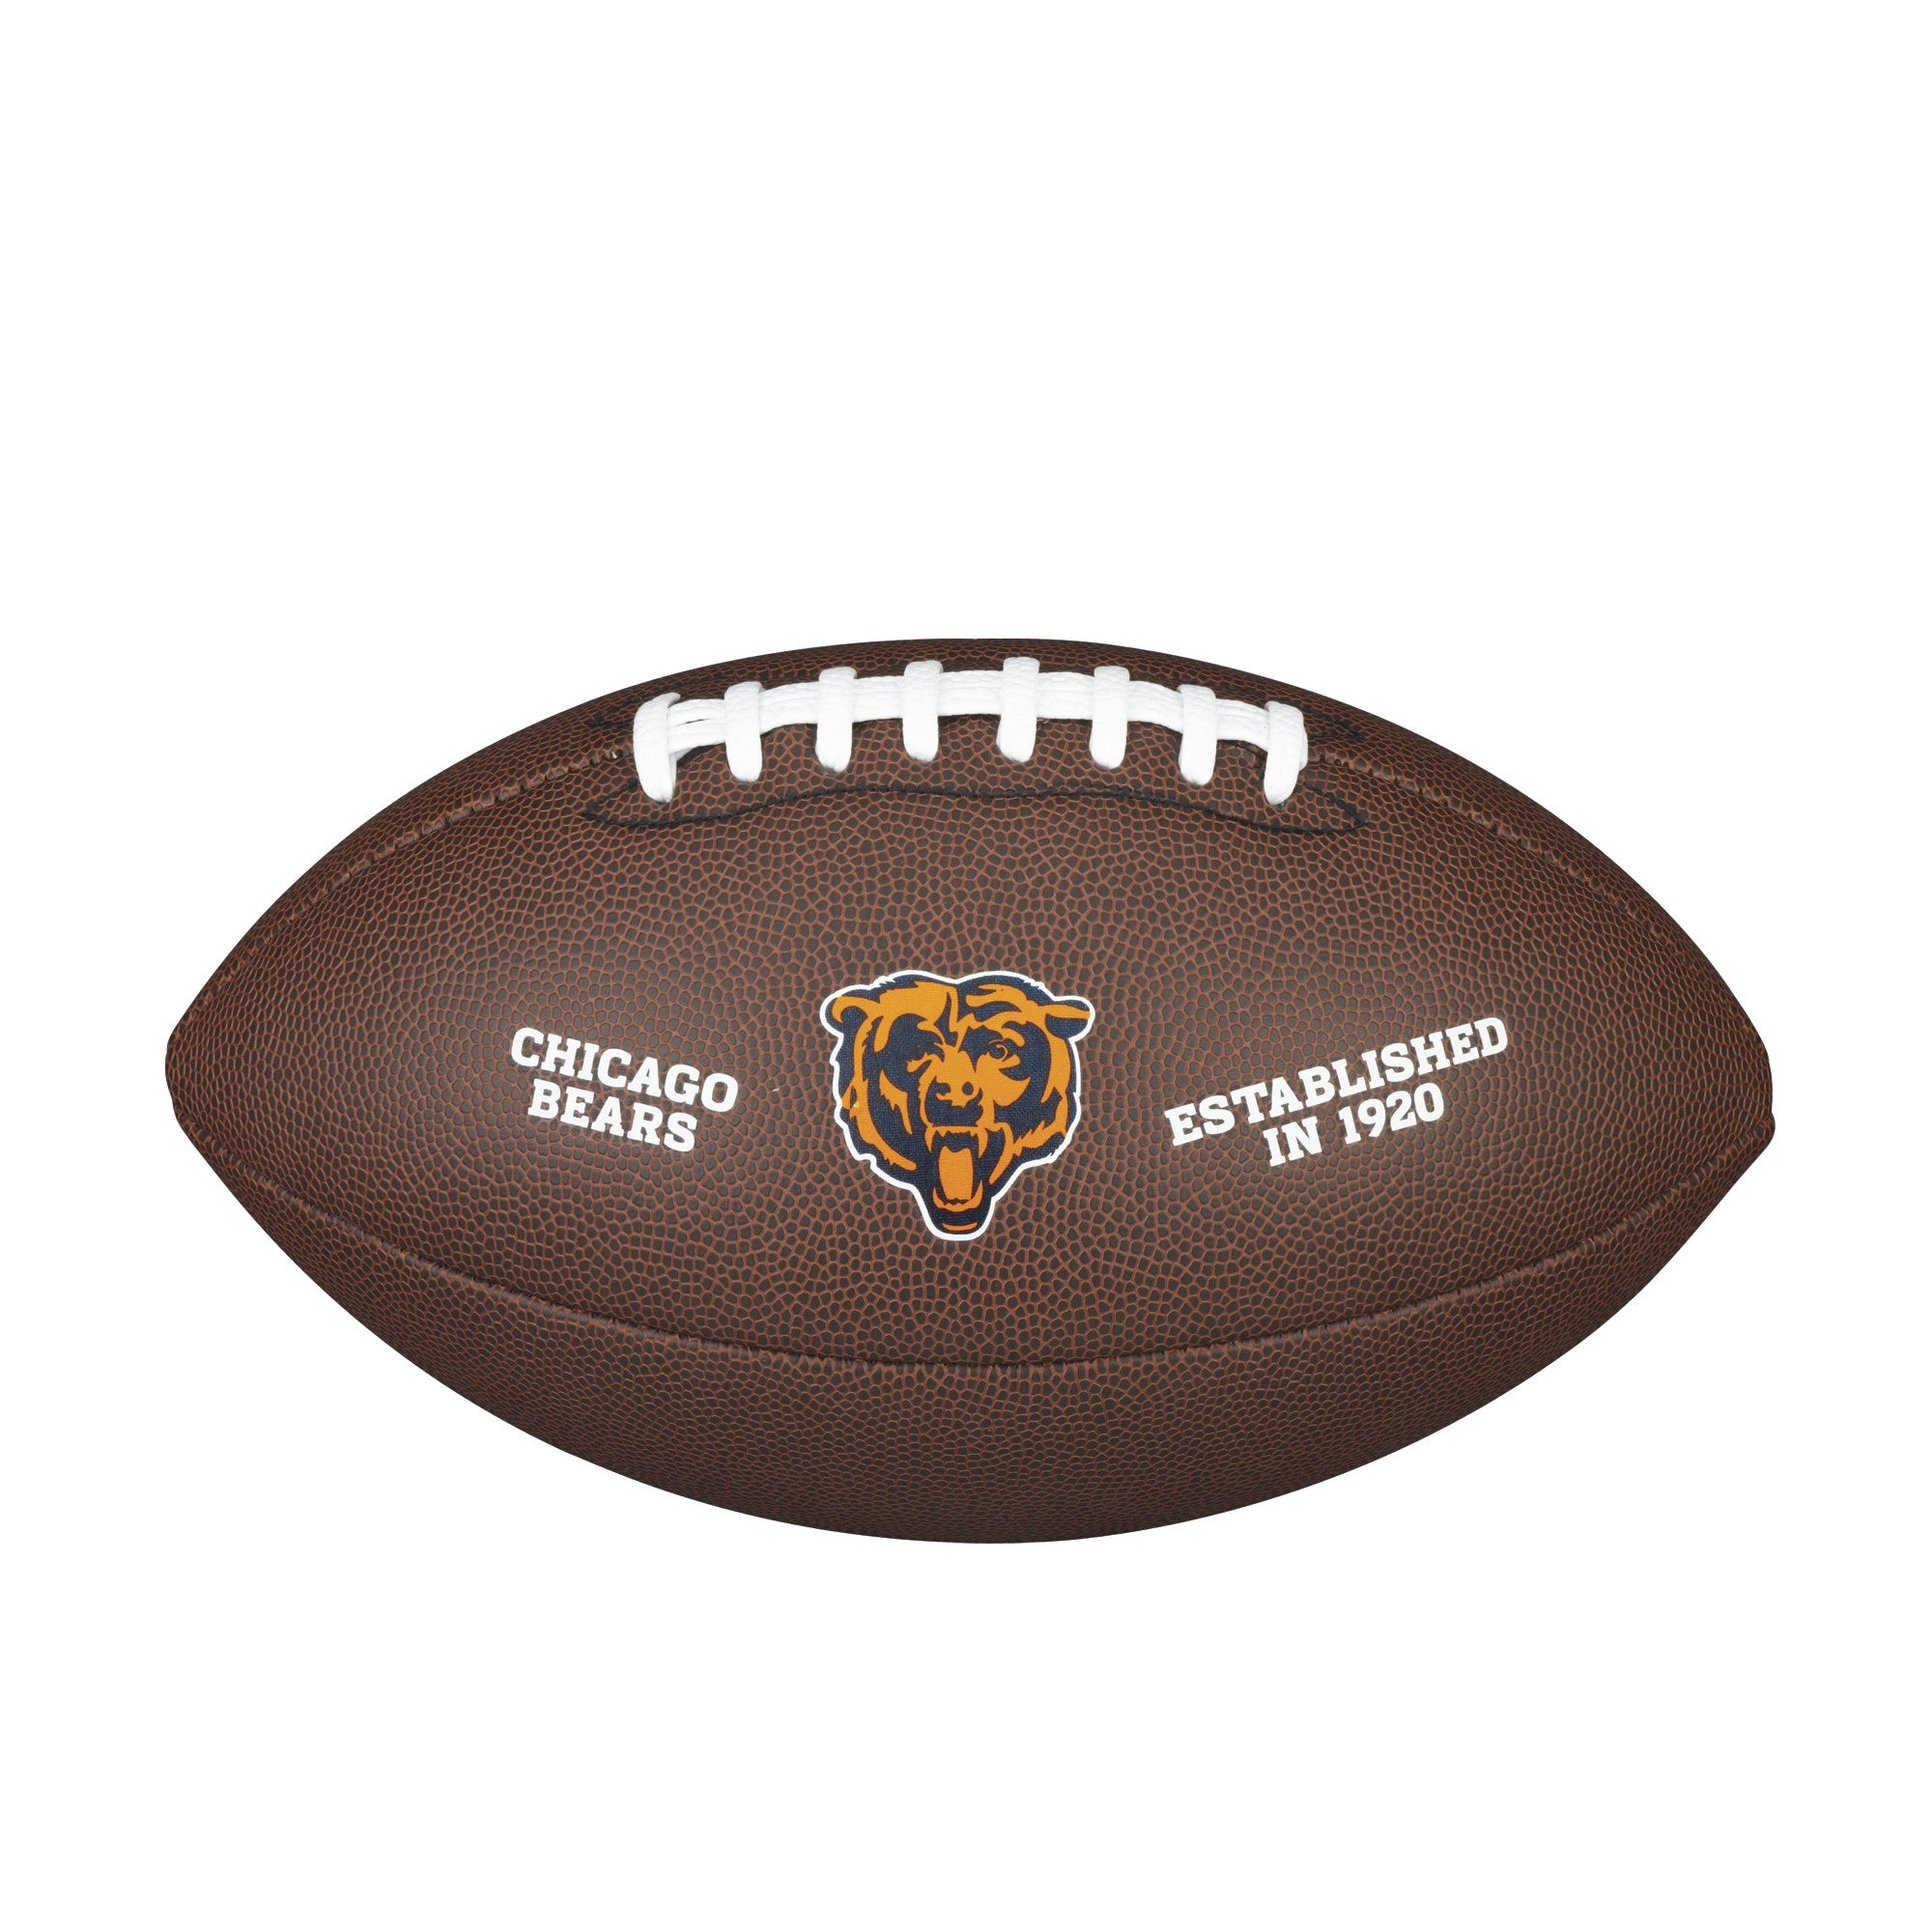 NFL TEAM LOGO COMPOSITE FOOTBALL - OFFICIAL, CHICAGO BEARS